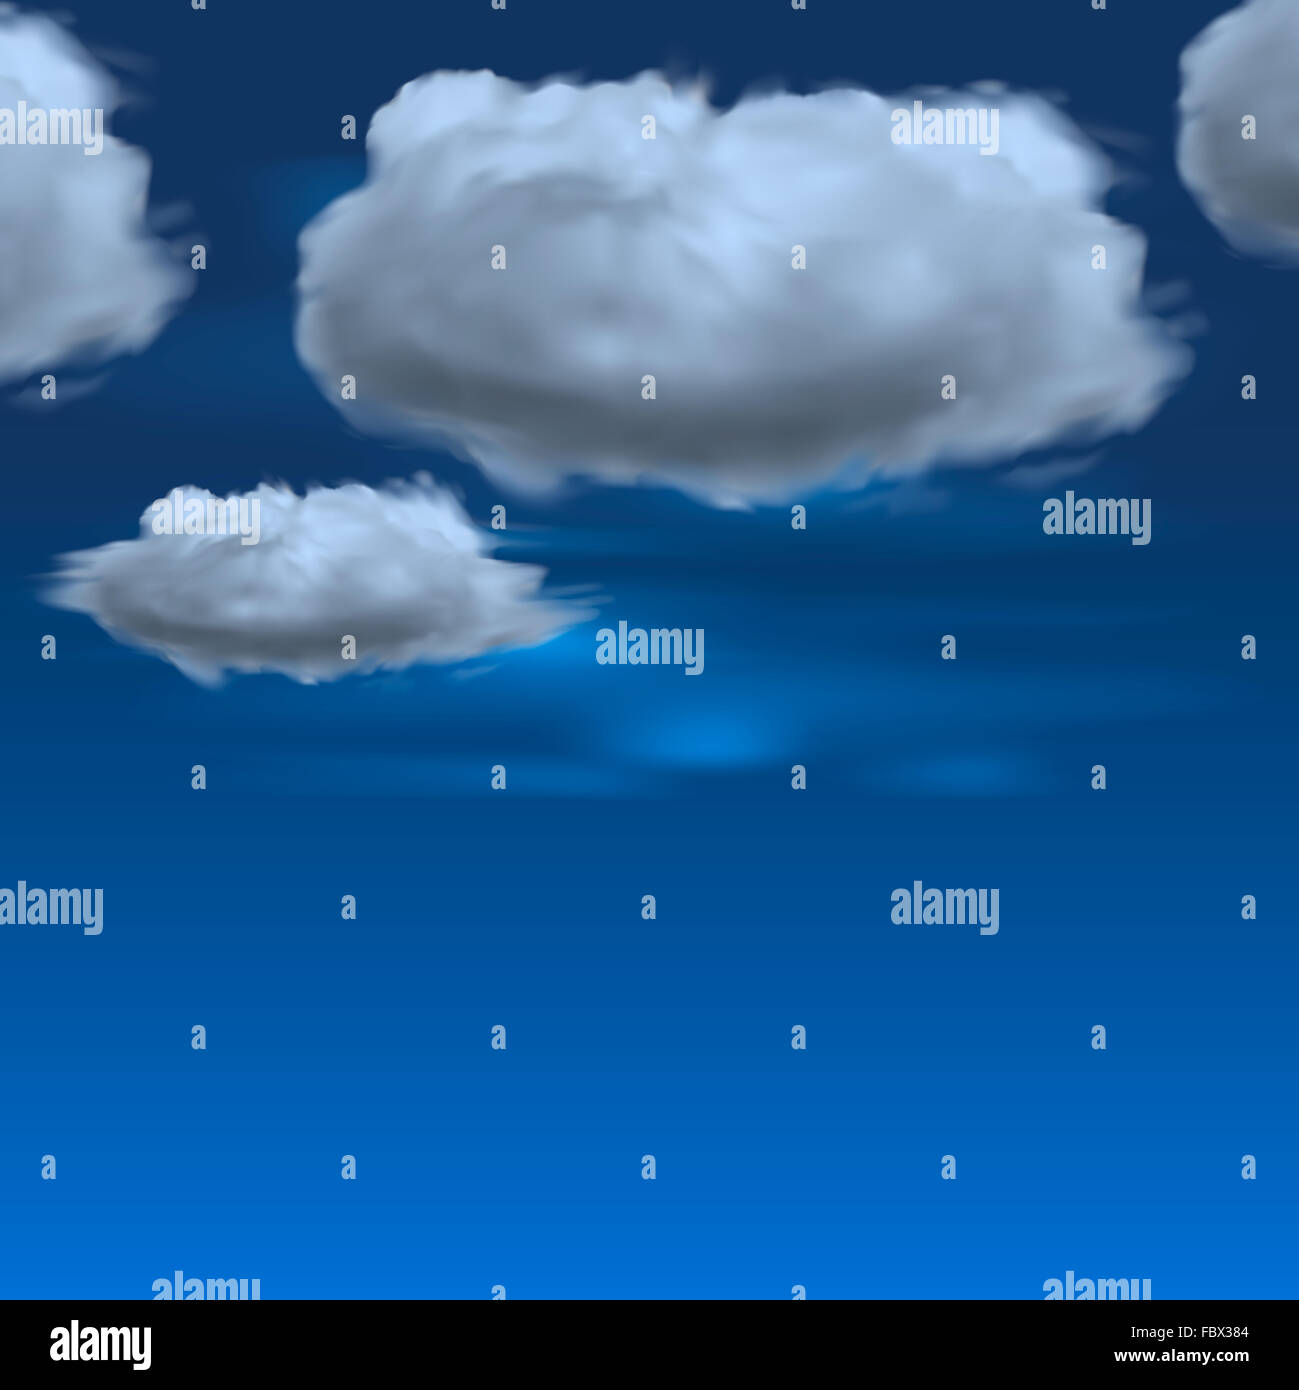 Blue sky with clouds, vector background - Stock Image